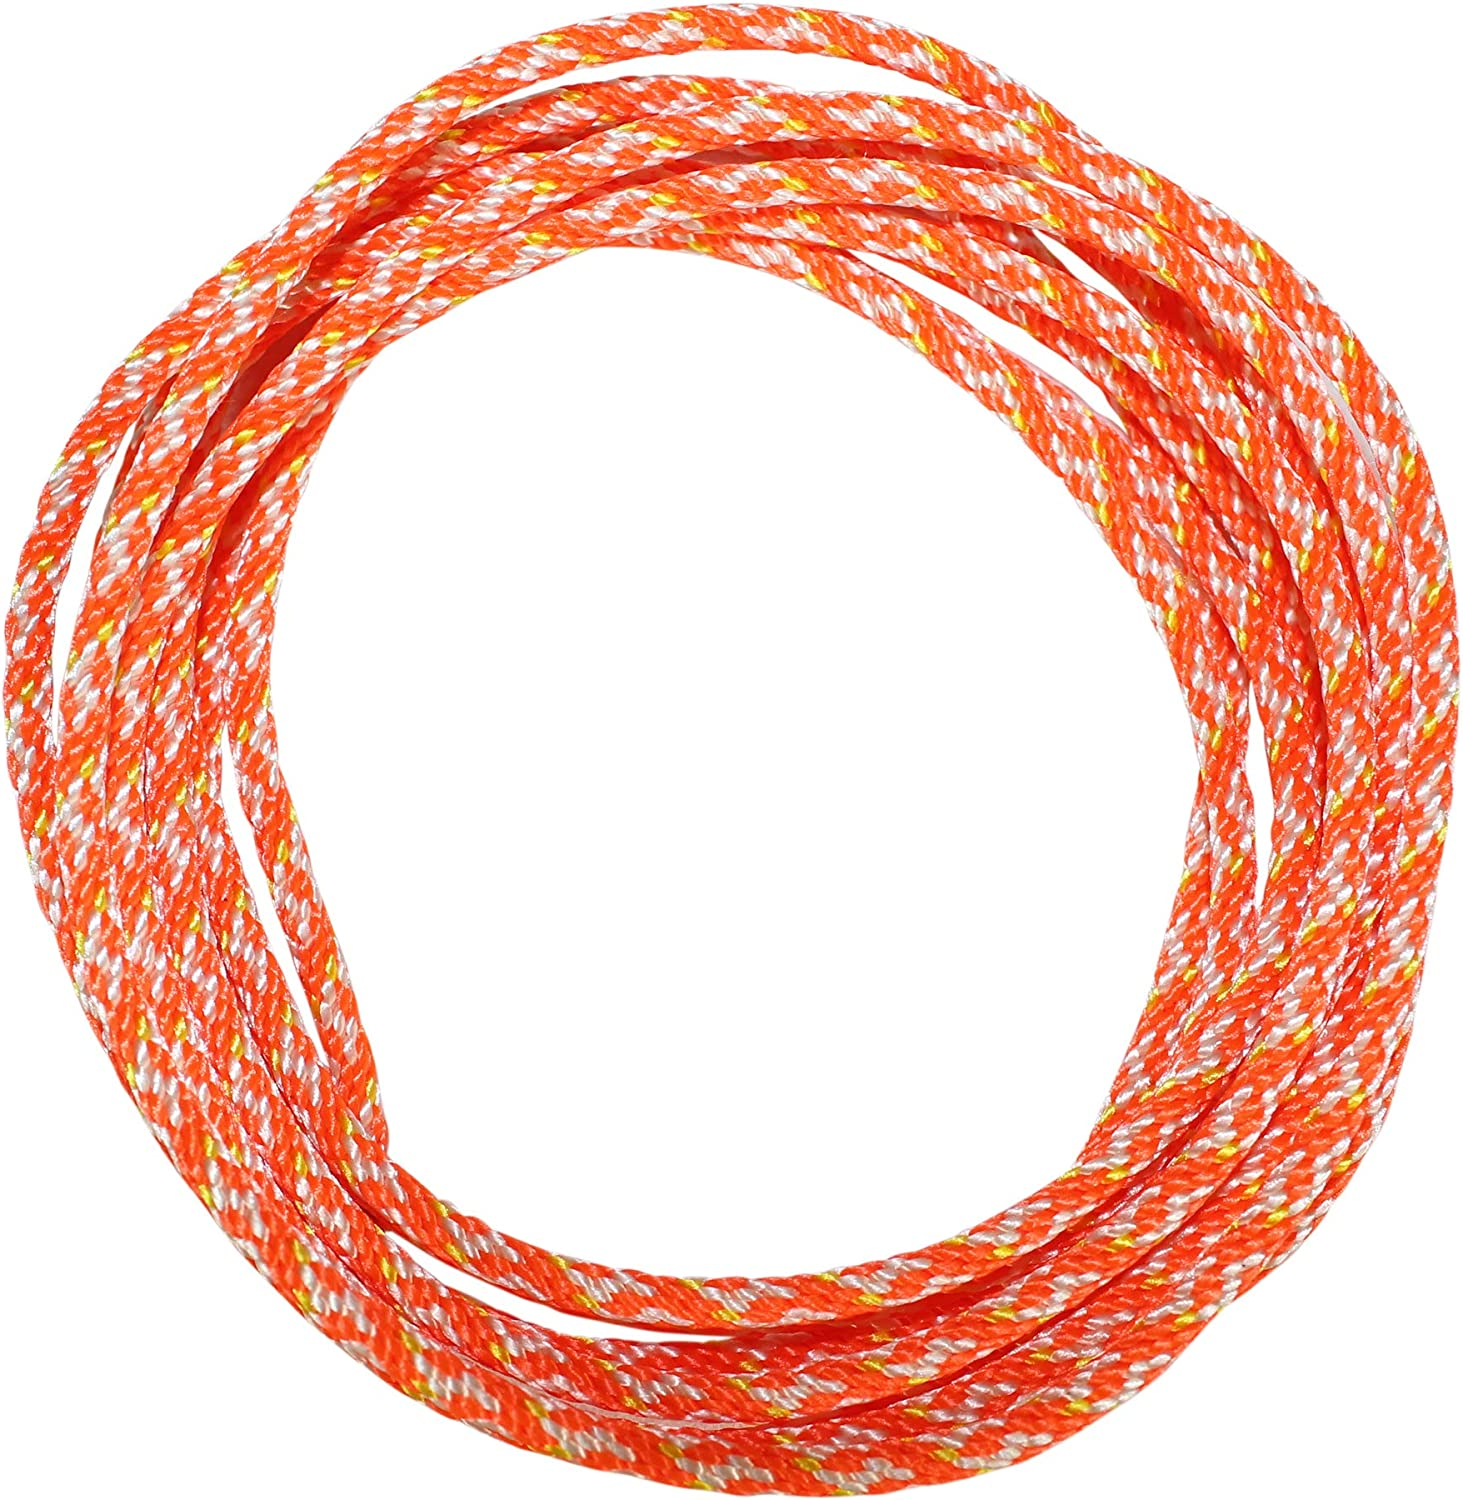 Generators Dacron Polyester Pull Cord - SGT KNOTS Small Engine Starter Rope 100 feet, Orange Replacement Cord Rope for Lawn Mowers Leaf Blowers Snowblowers #6 More Solid Braid Rope